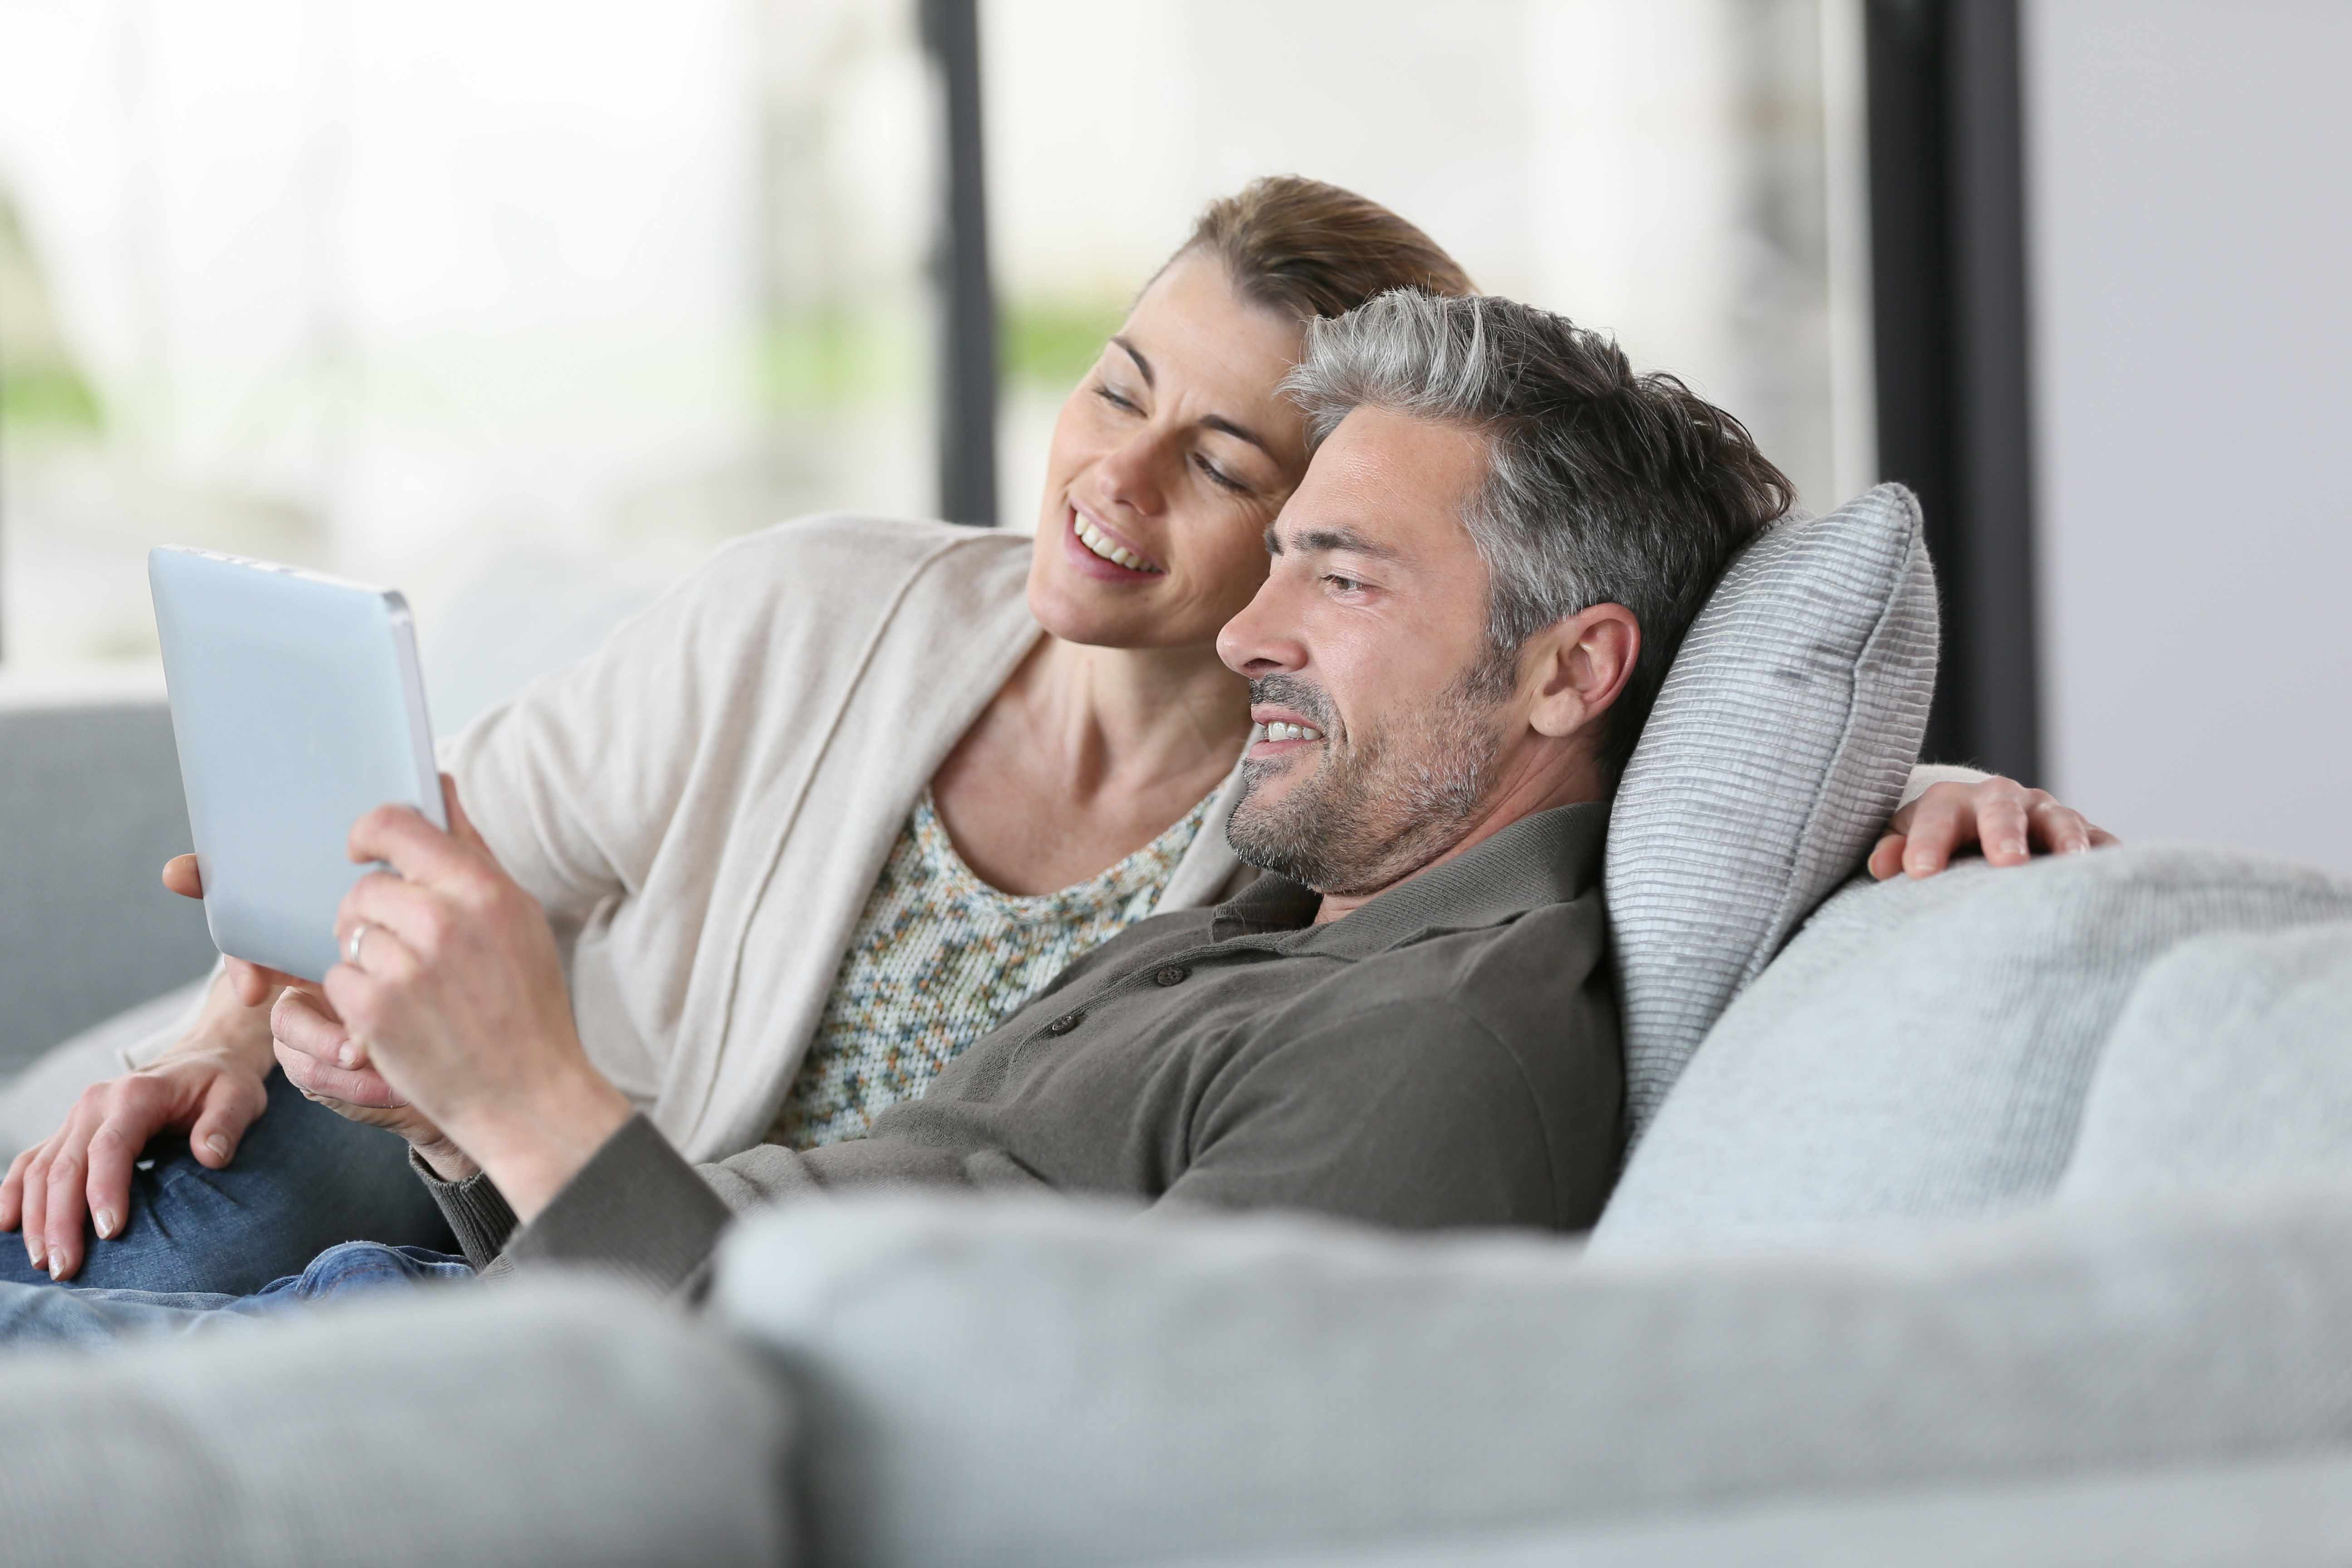 a middle-aged couple with gray hair sitting on a couch looking at a computer tablet